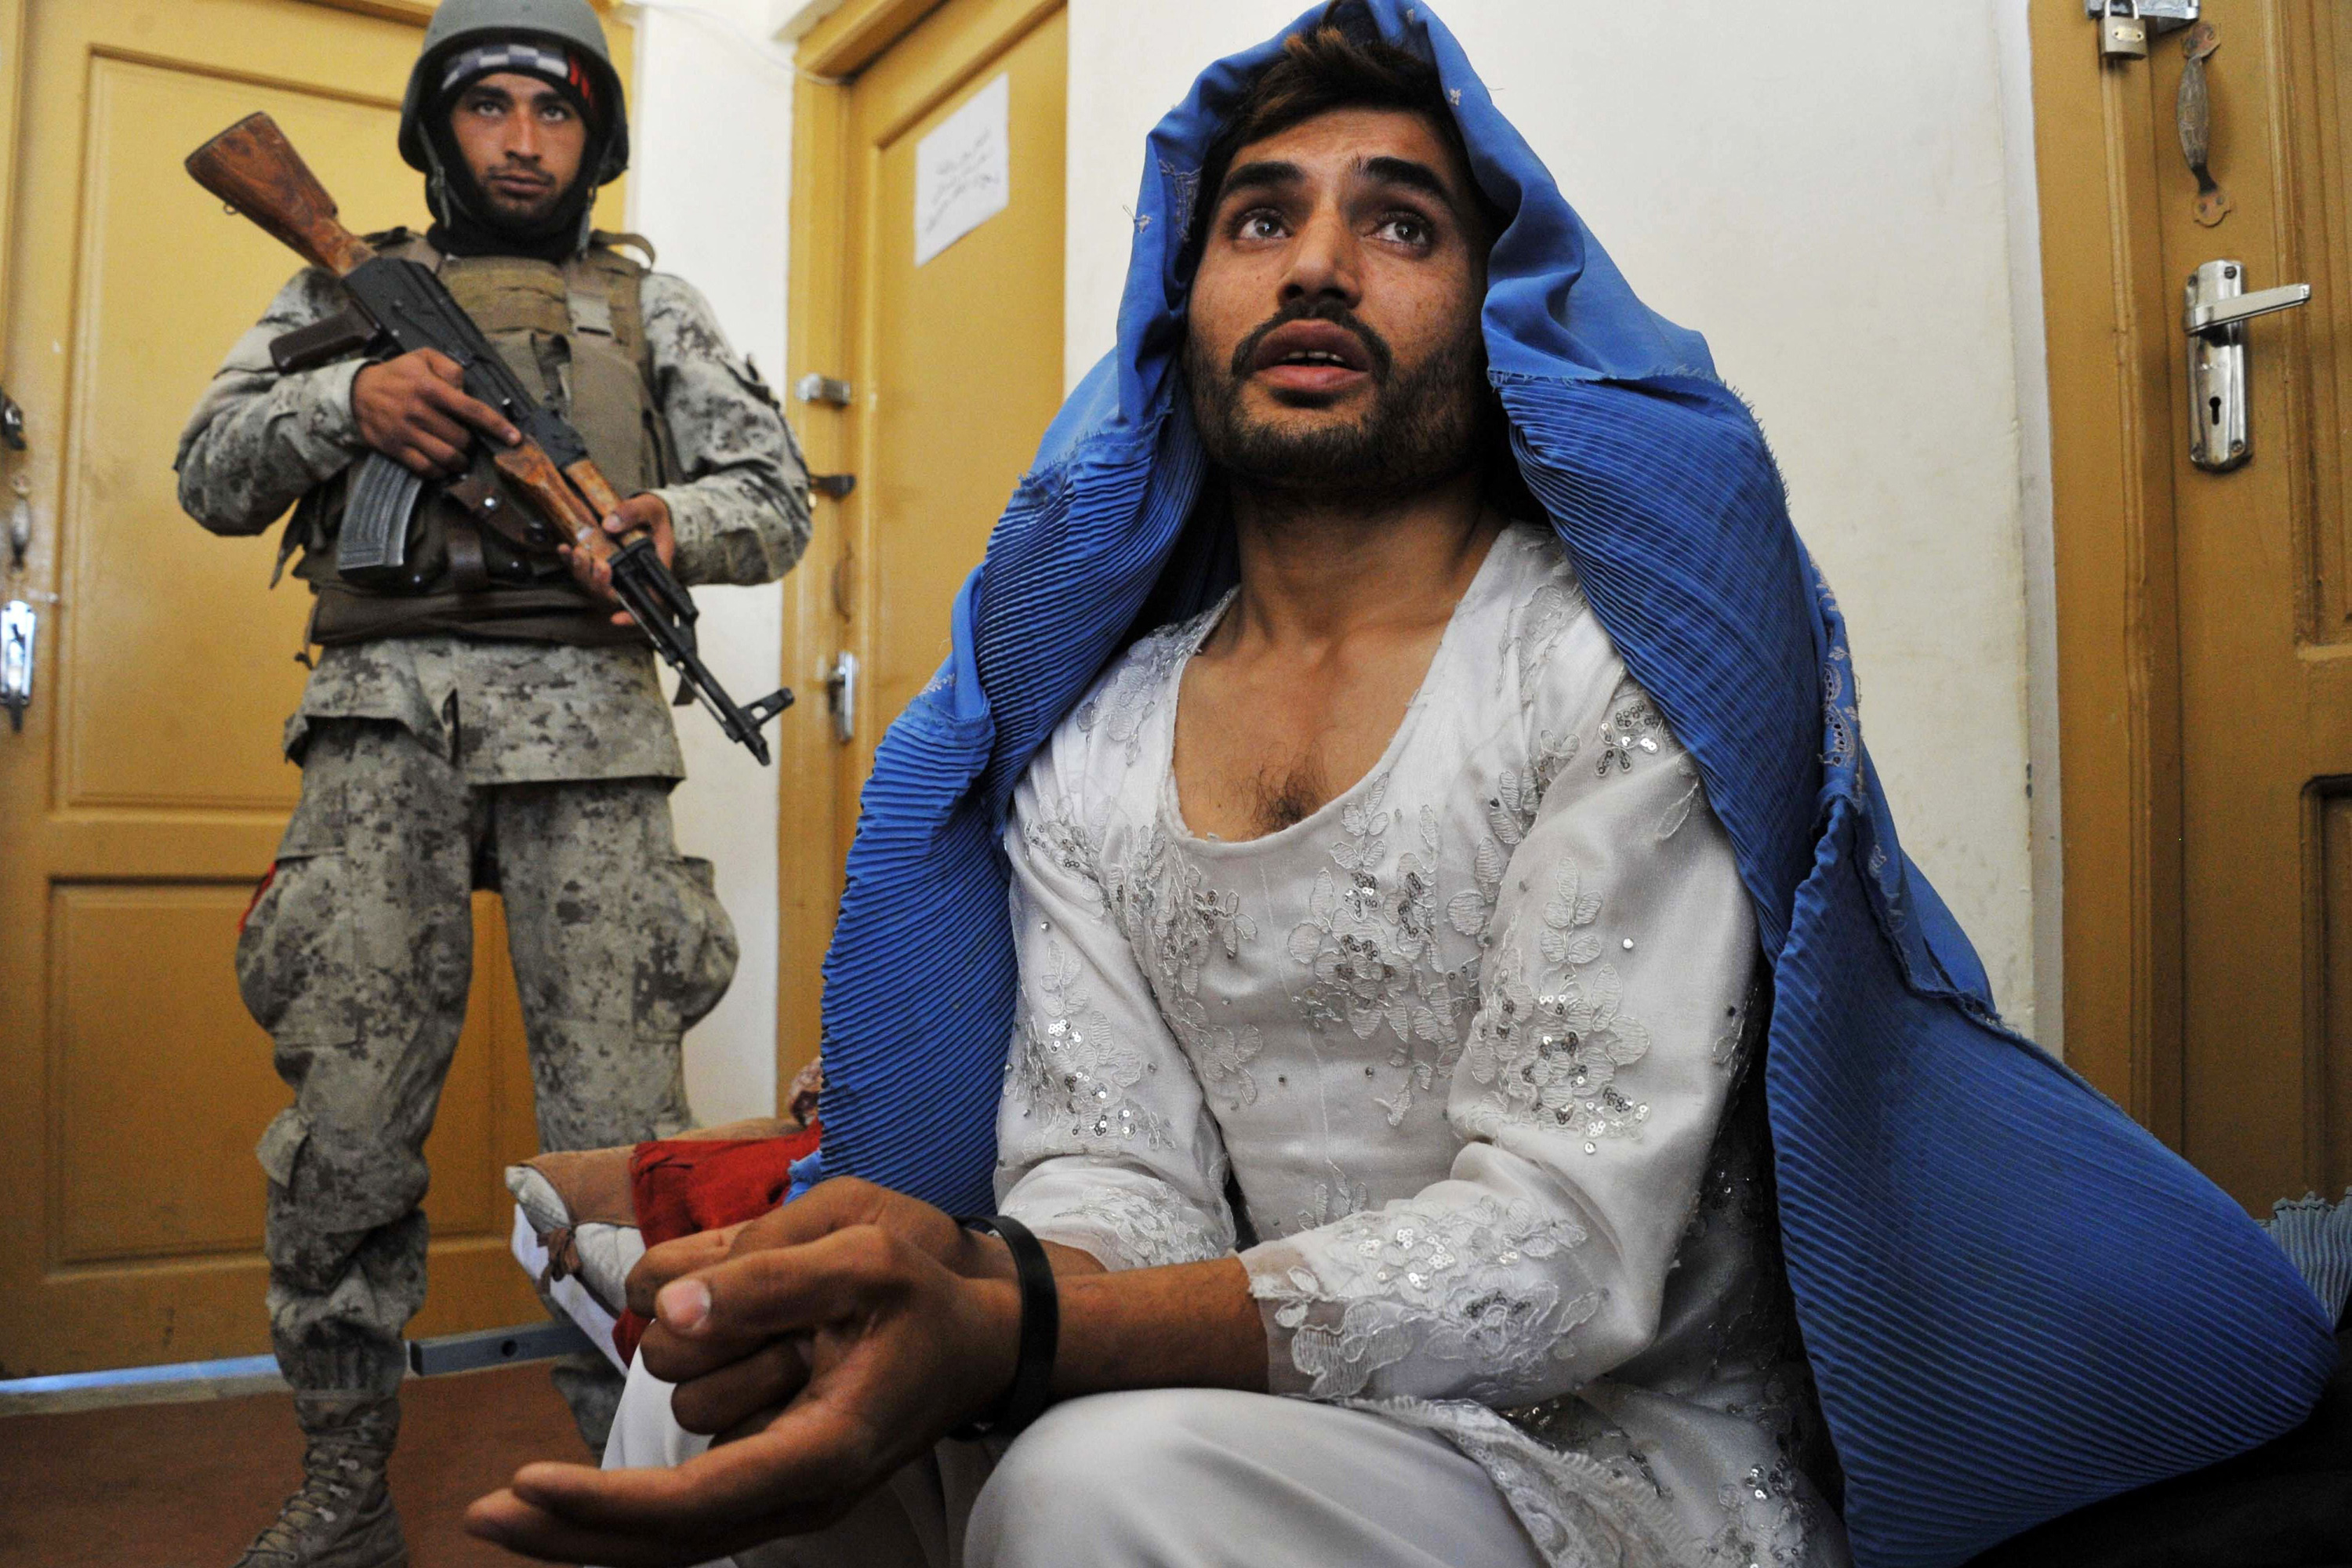 TOPSHOTS                               Afghan security personnel present a burqa-clad resident they say is a Taliban fighter to the media at the Afghan National Army headquarters in Khogyani District near Jalalabad on March 18,2014. Three Taliban insurgents have been arrested in possession of heroin by Afghan Joint Forces during an operation in the Khogyani District of Nangarhar province.  AFP PHOTO / Noorullah ShirzadaNoorullah Shirzada/AFP/Getty Images